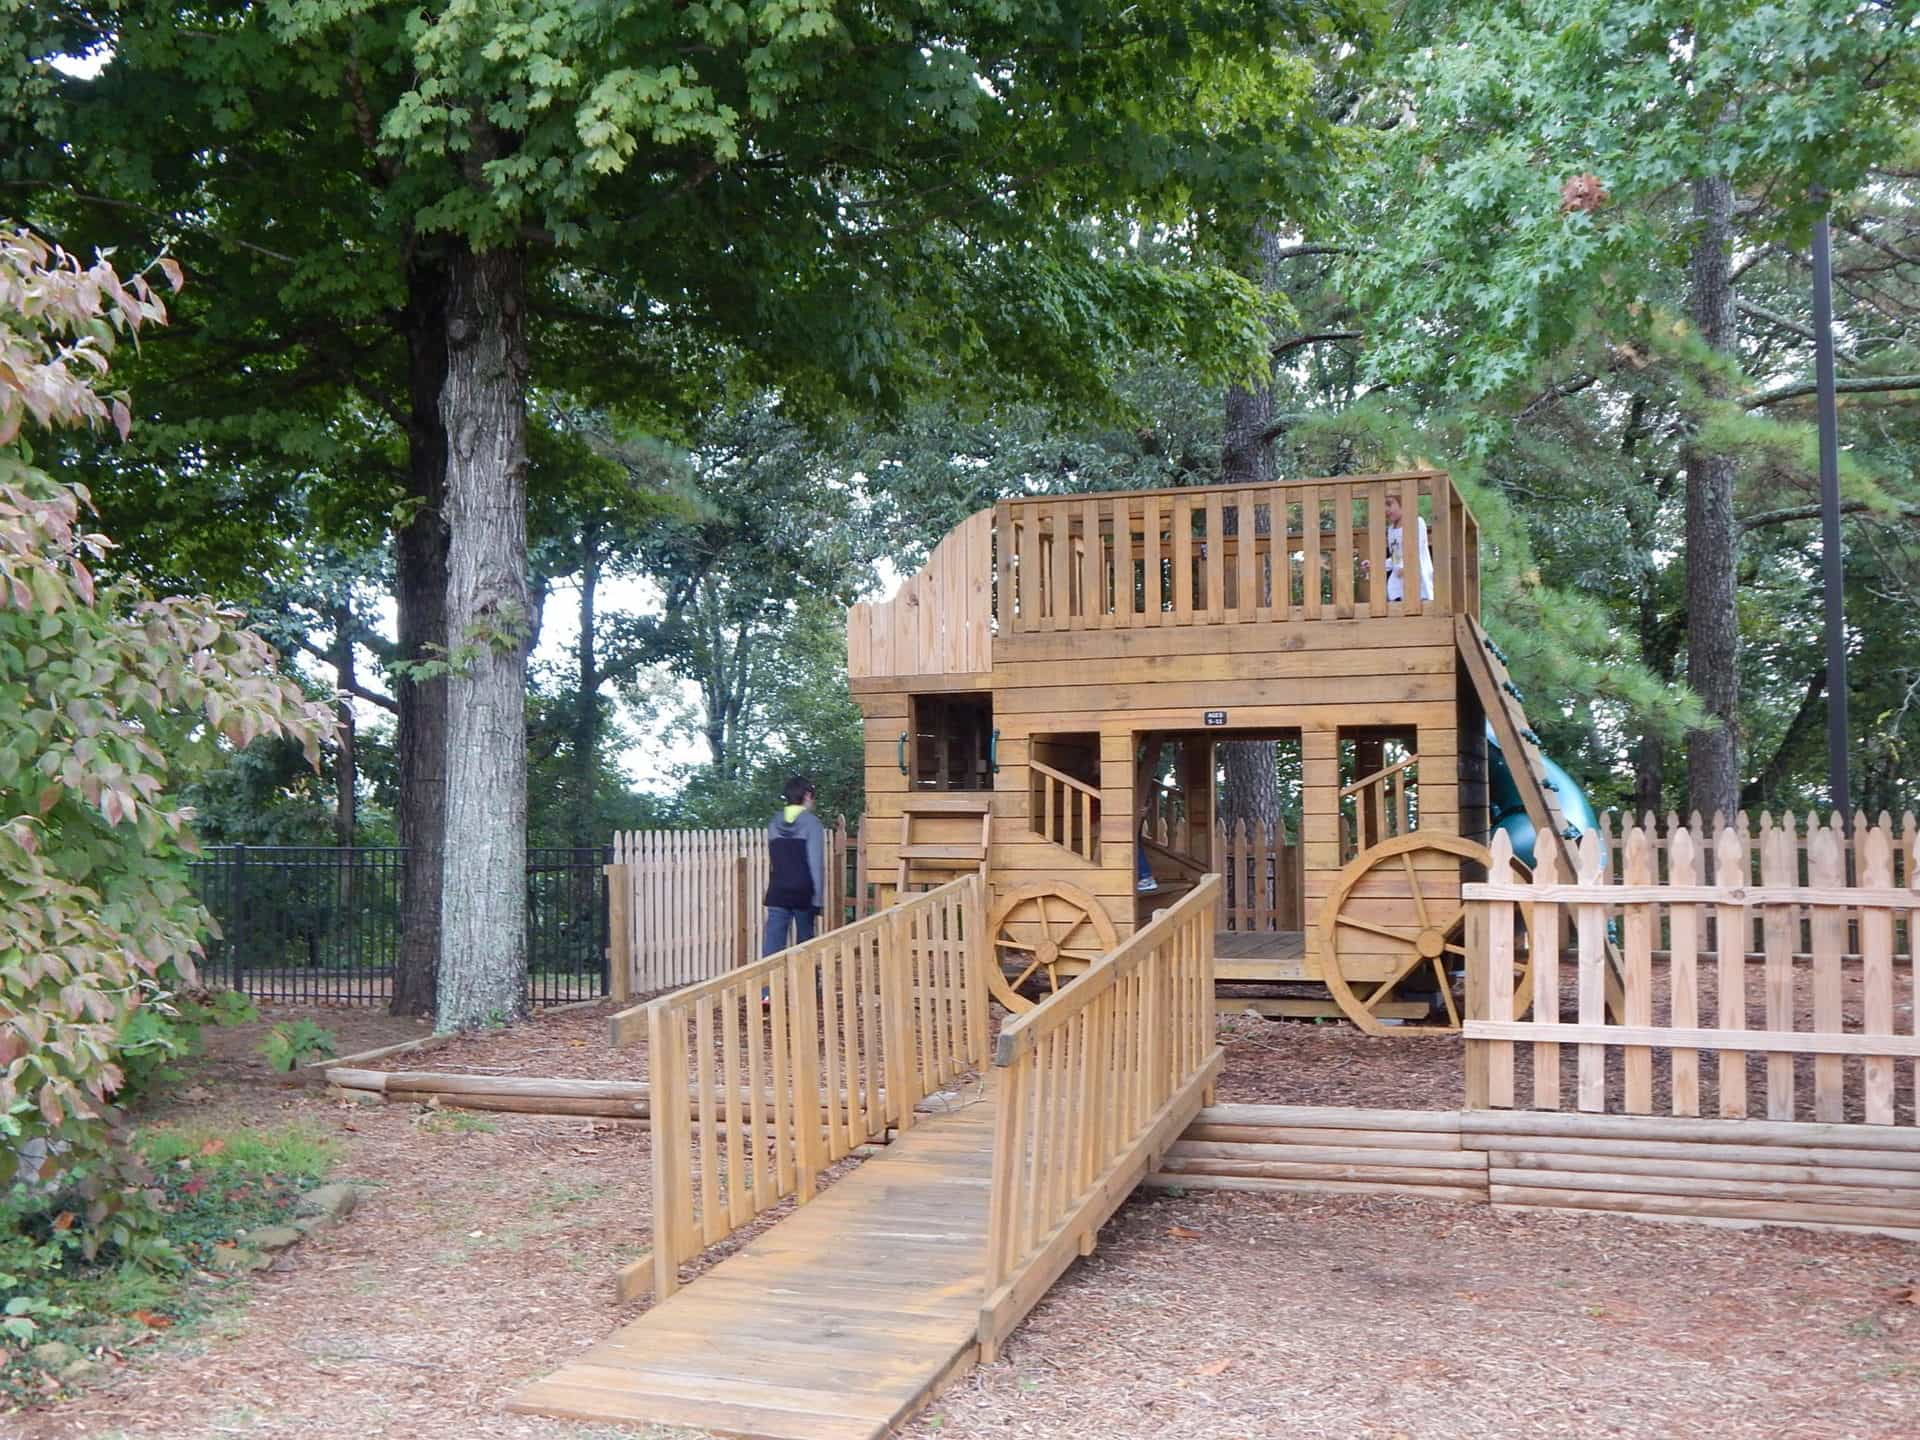 Burritt on the Mountain - Playscape